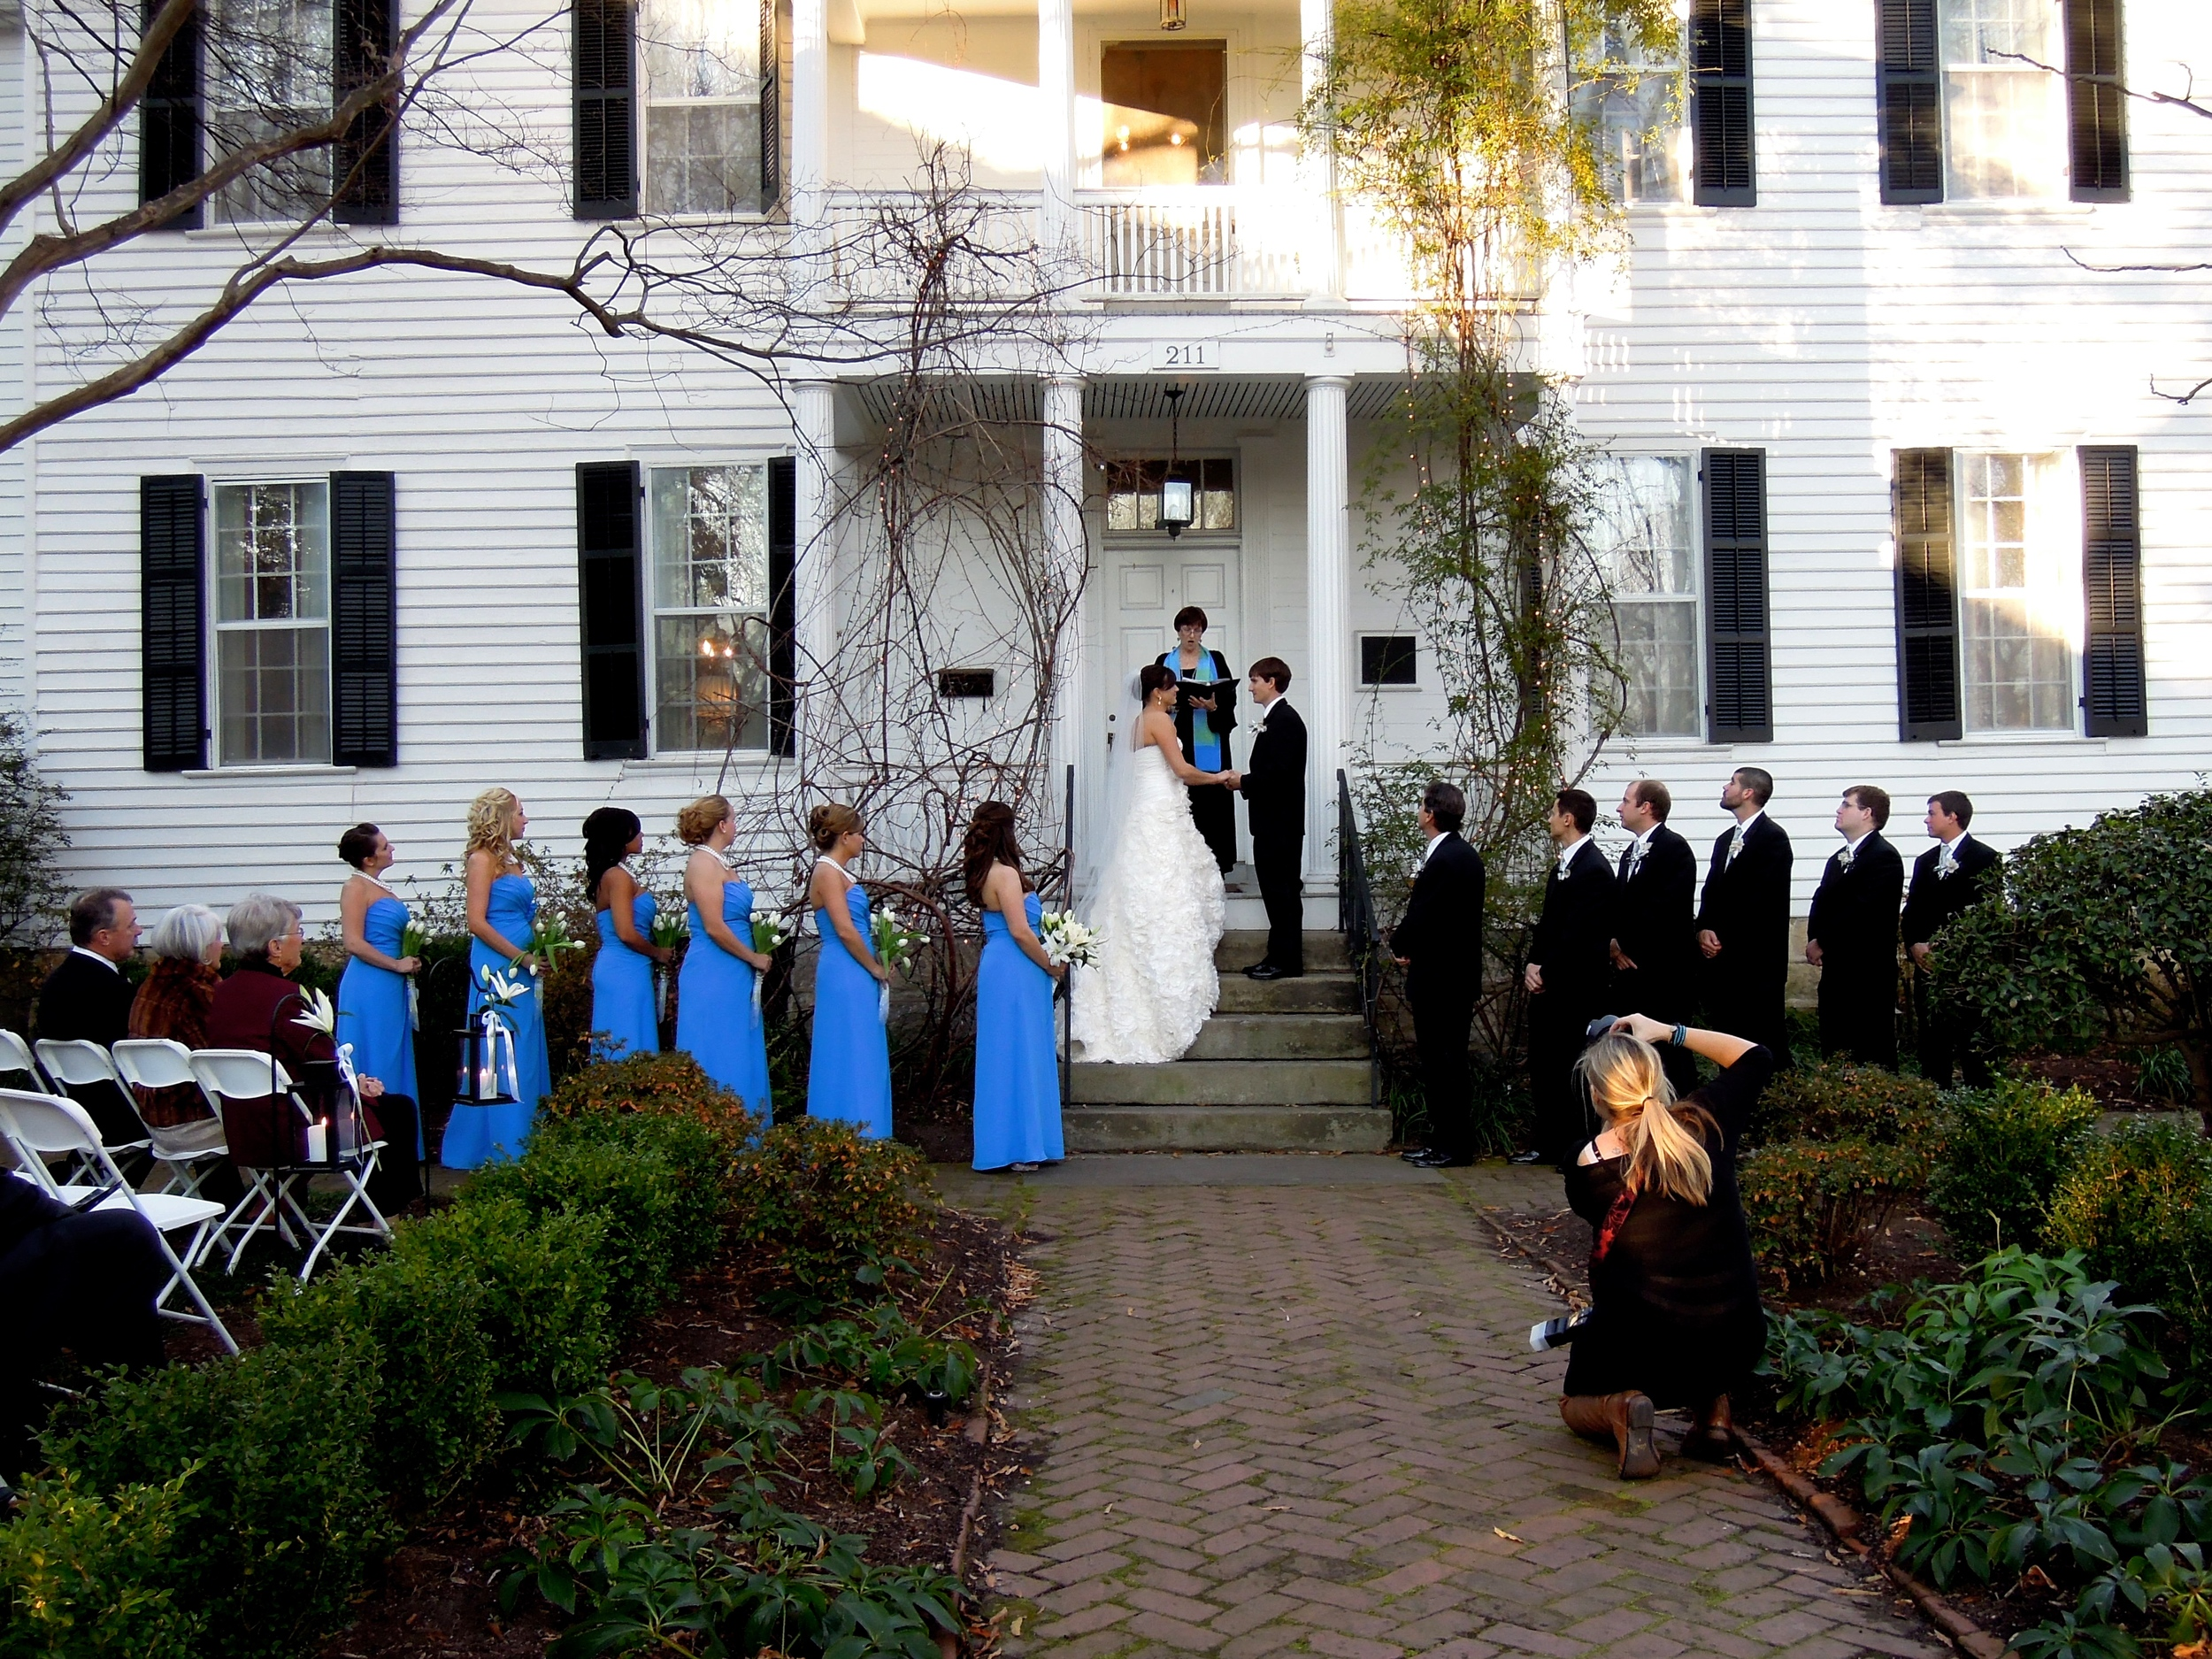 Outdoor wedding ceremony at the historic Haywood Hall in downtown Raleigh